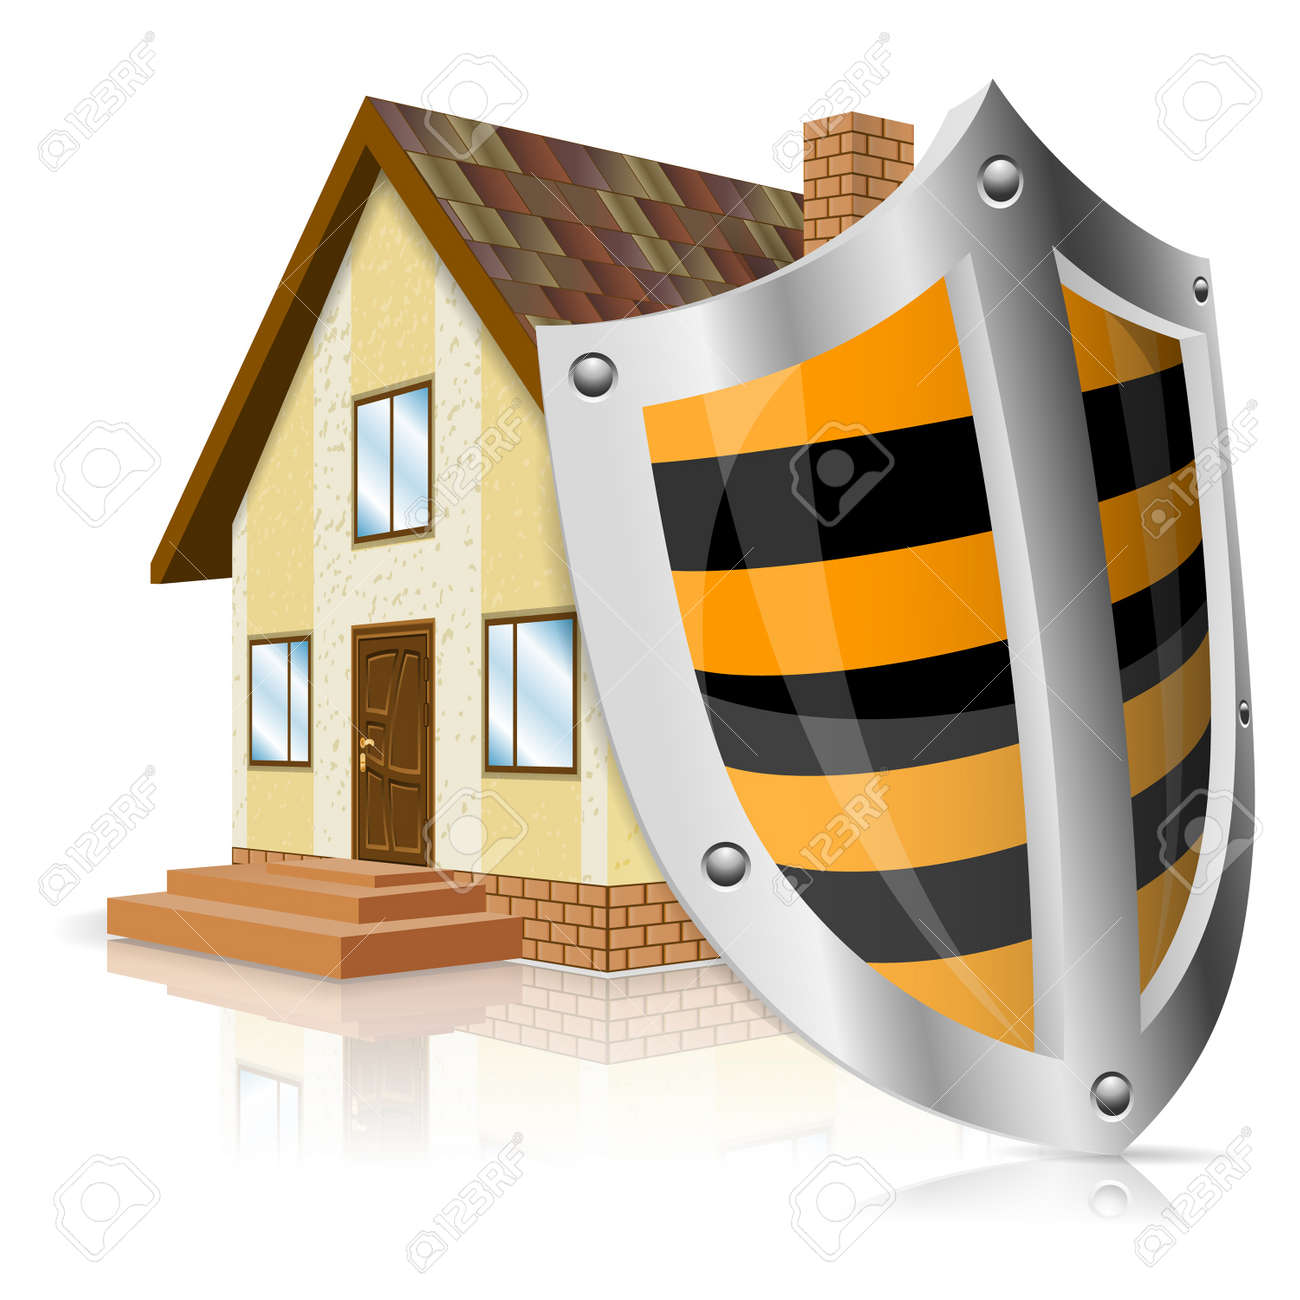 Shield House home icon with shield - safe house concept royalty free cliparts